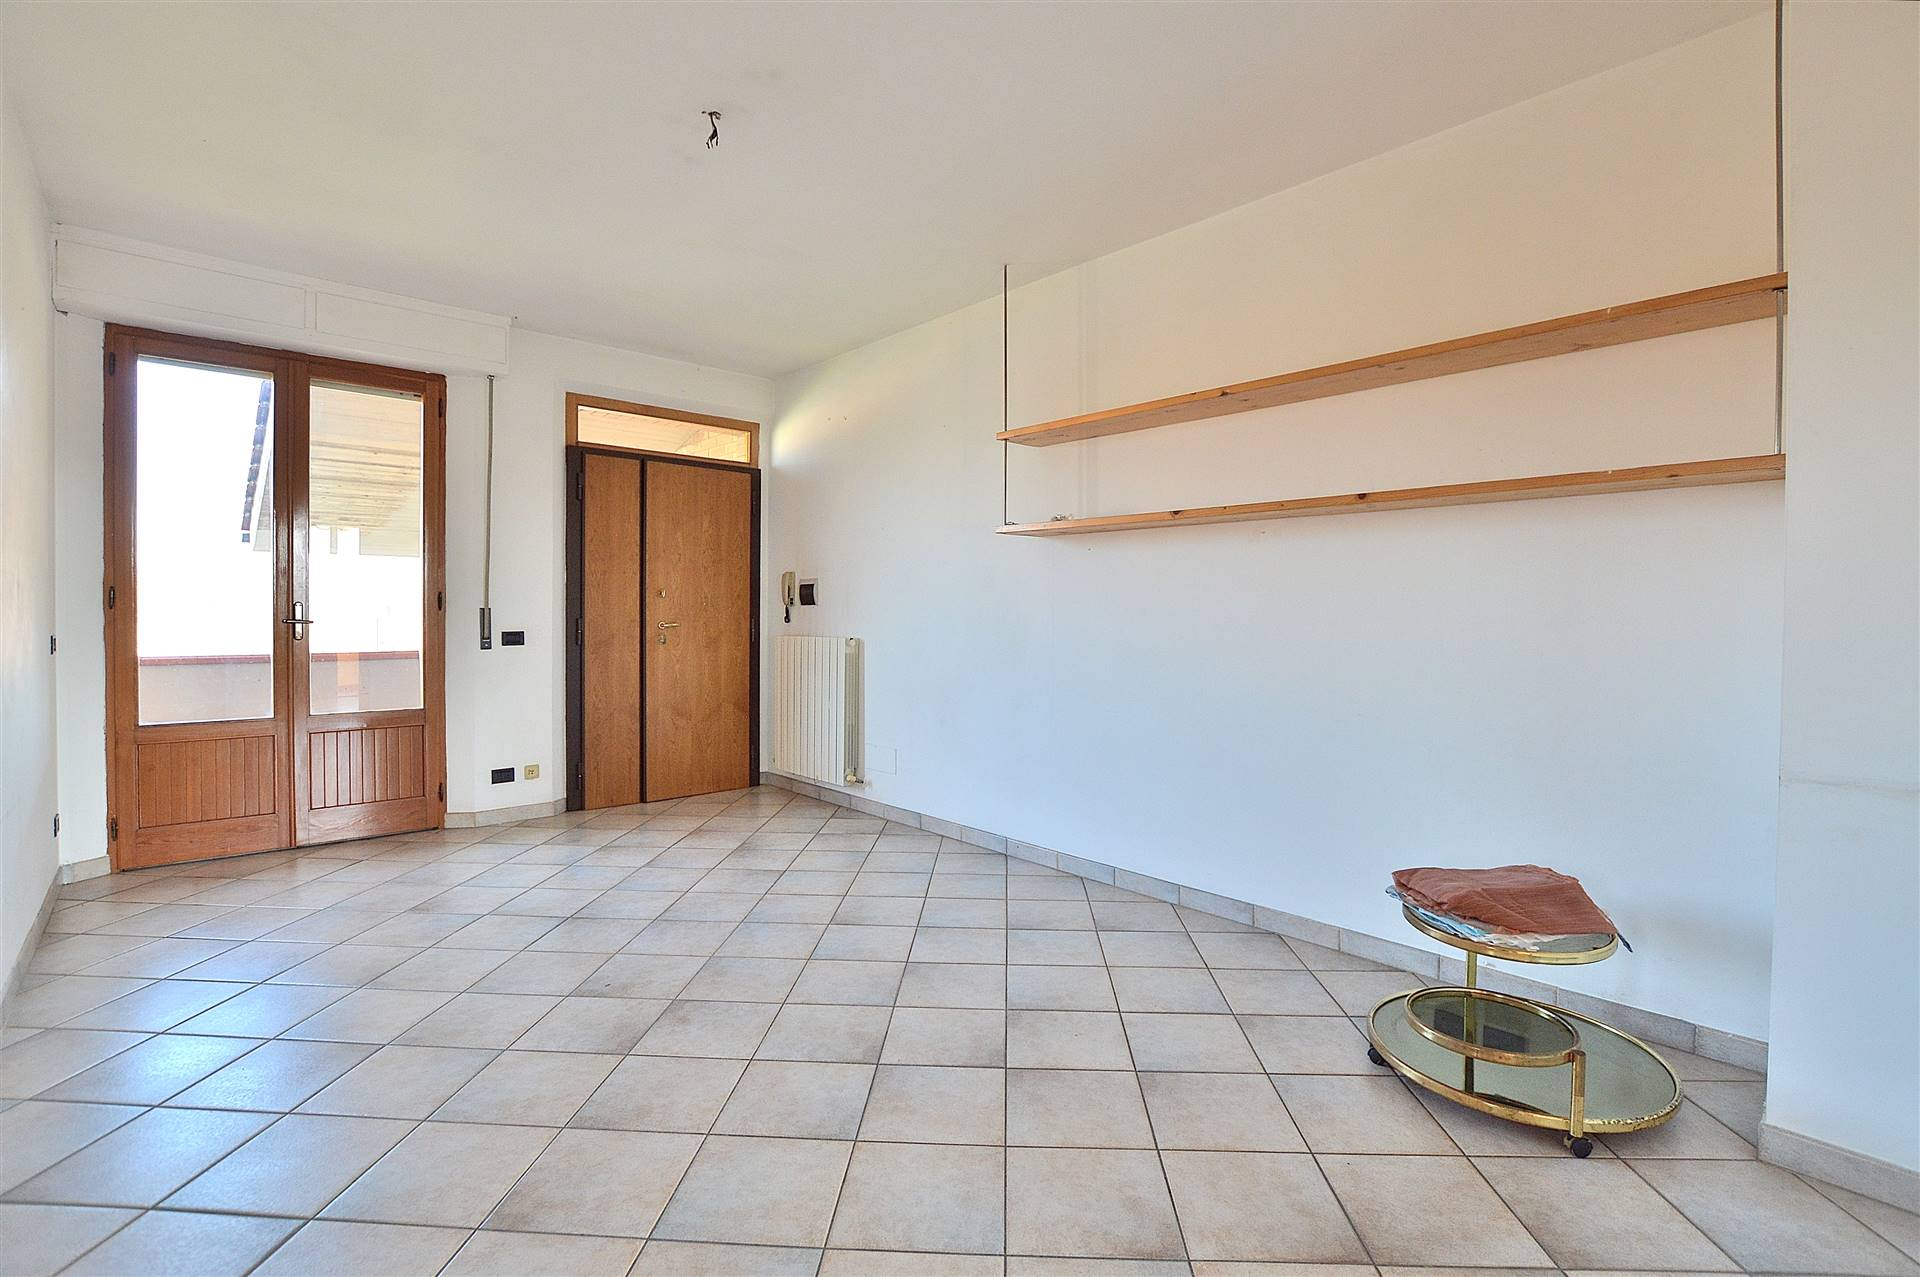 MORE DI CUNA, MONTERONI D'ARBIA, Apartment for sale of 70 Sq. mt., Excellent Condition, Heating Individual heating system, Energetic class: G, Epi: 271,4 kwh/m2 year, placed at 2° on 2, composed by: